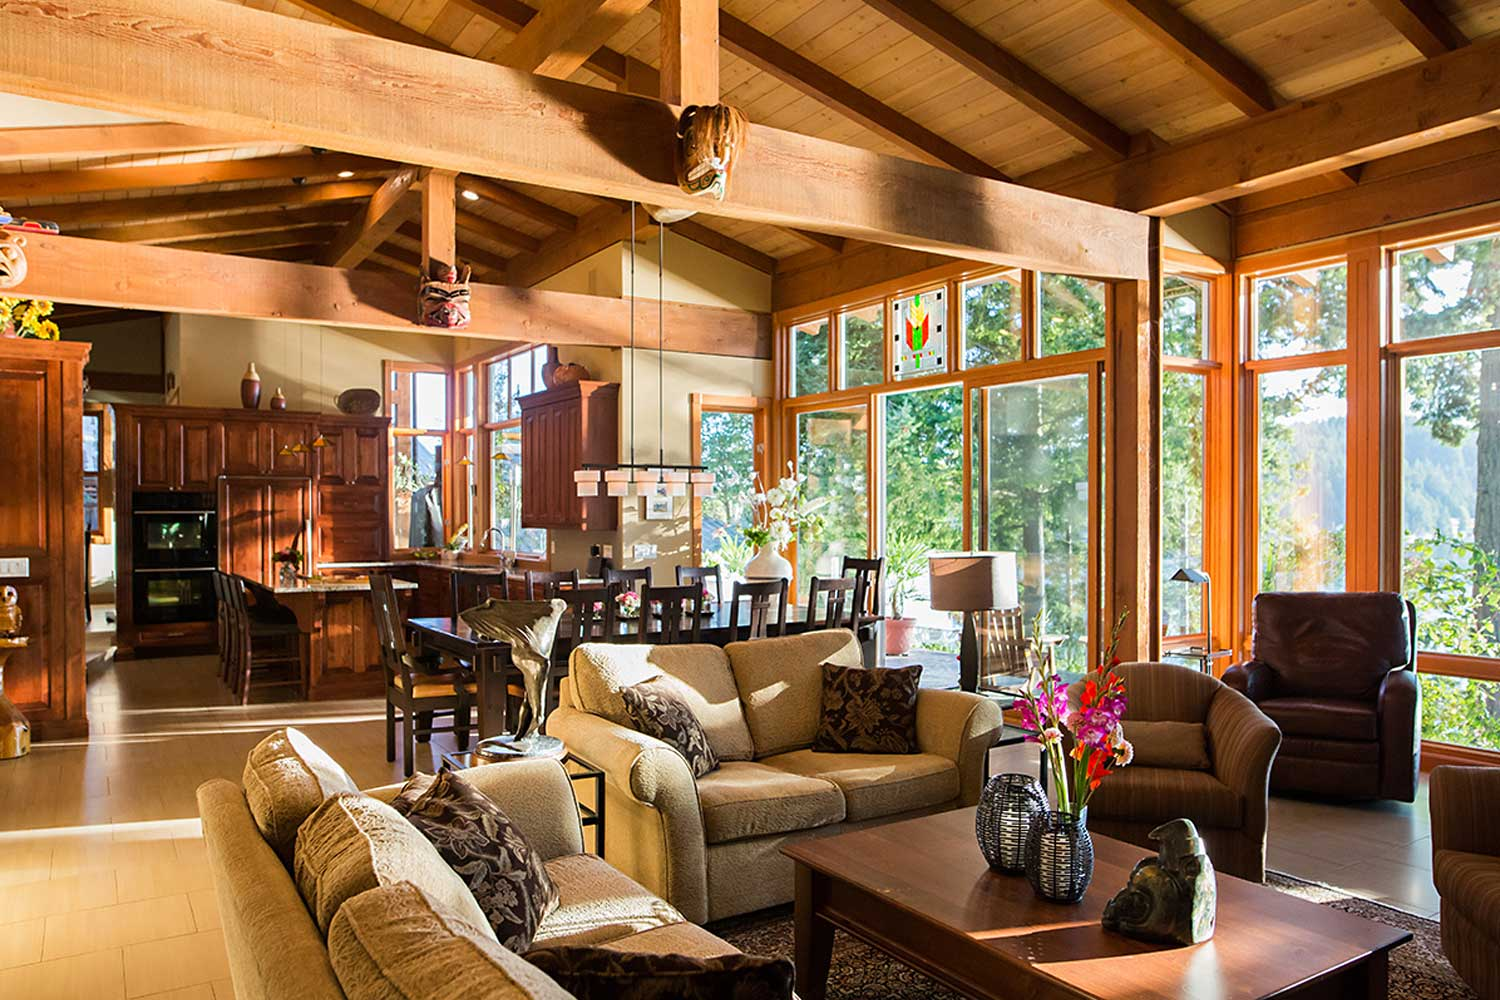 Sunlight streams through the windows to light up the dining room, kitchen, and living room of this luxury holiday house.